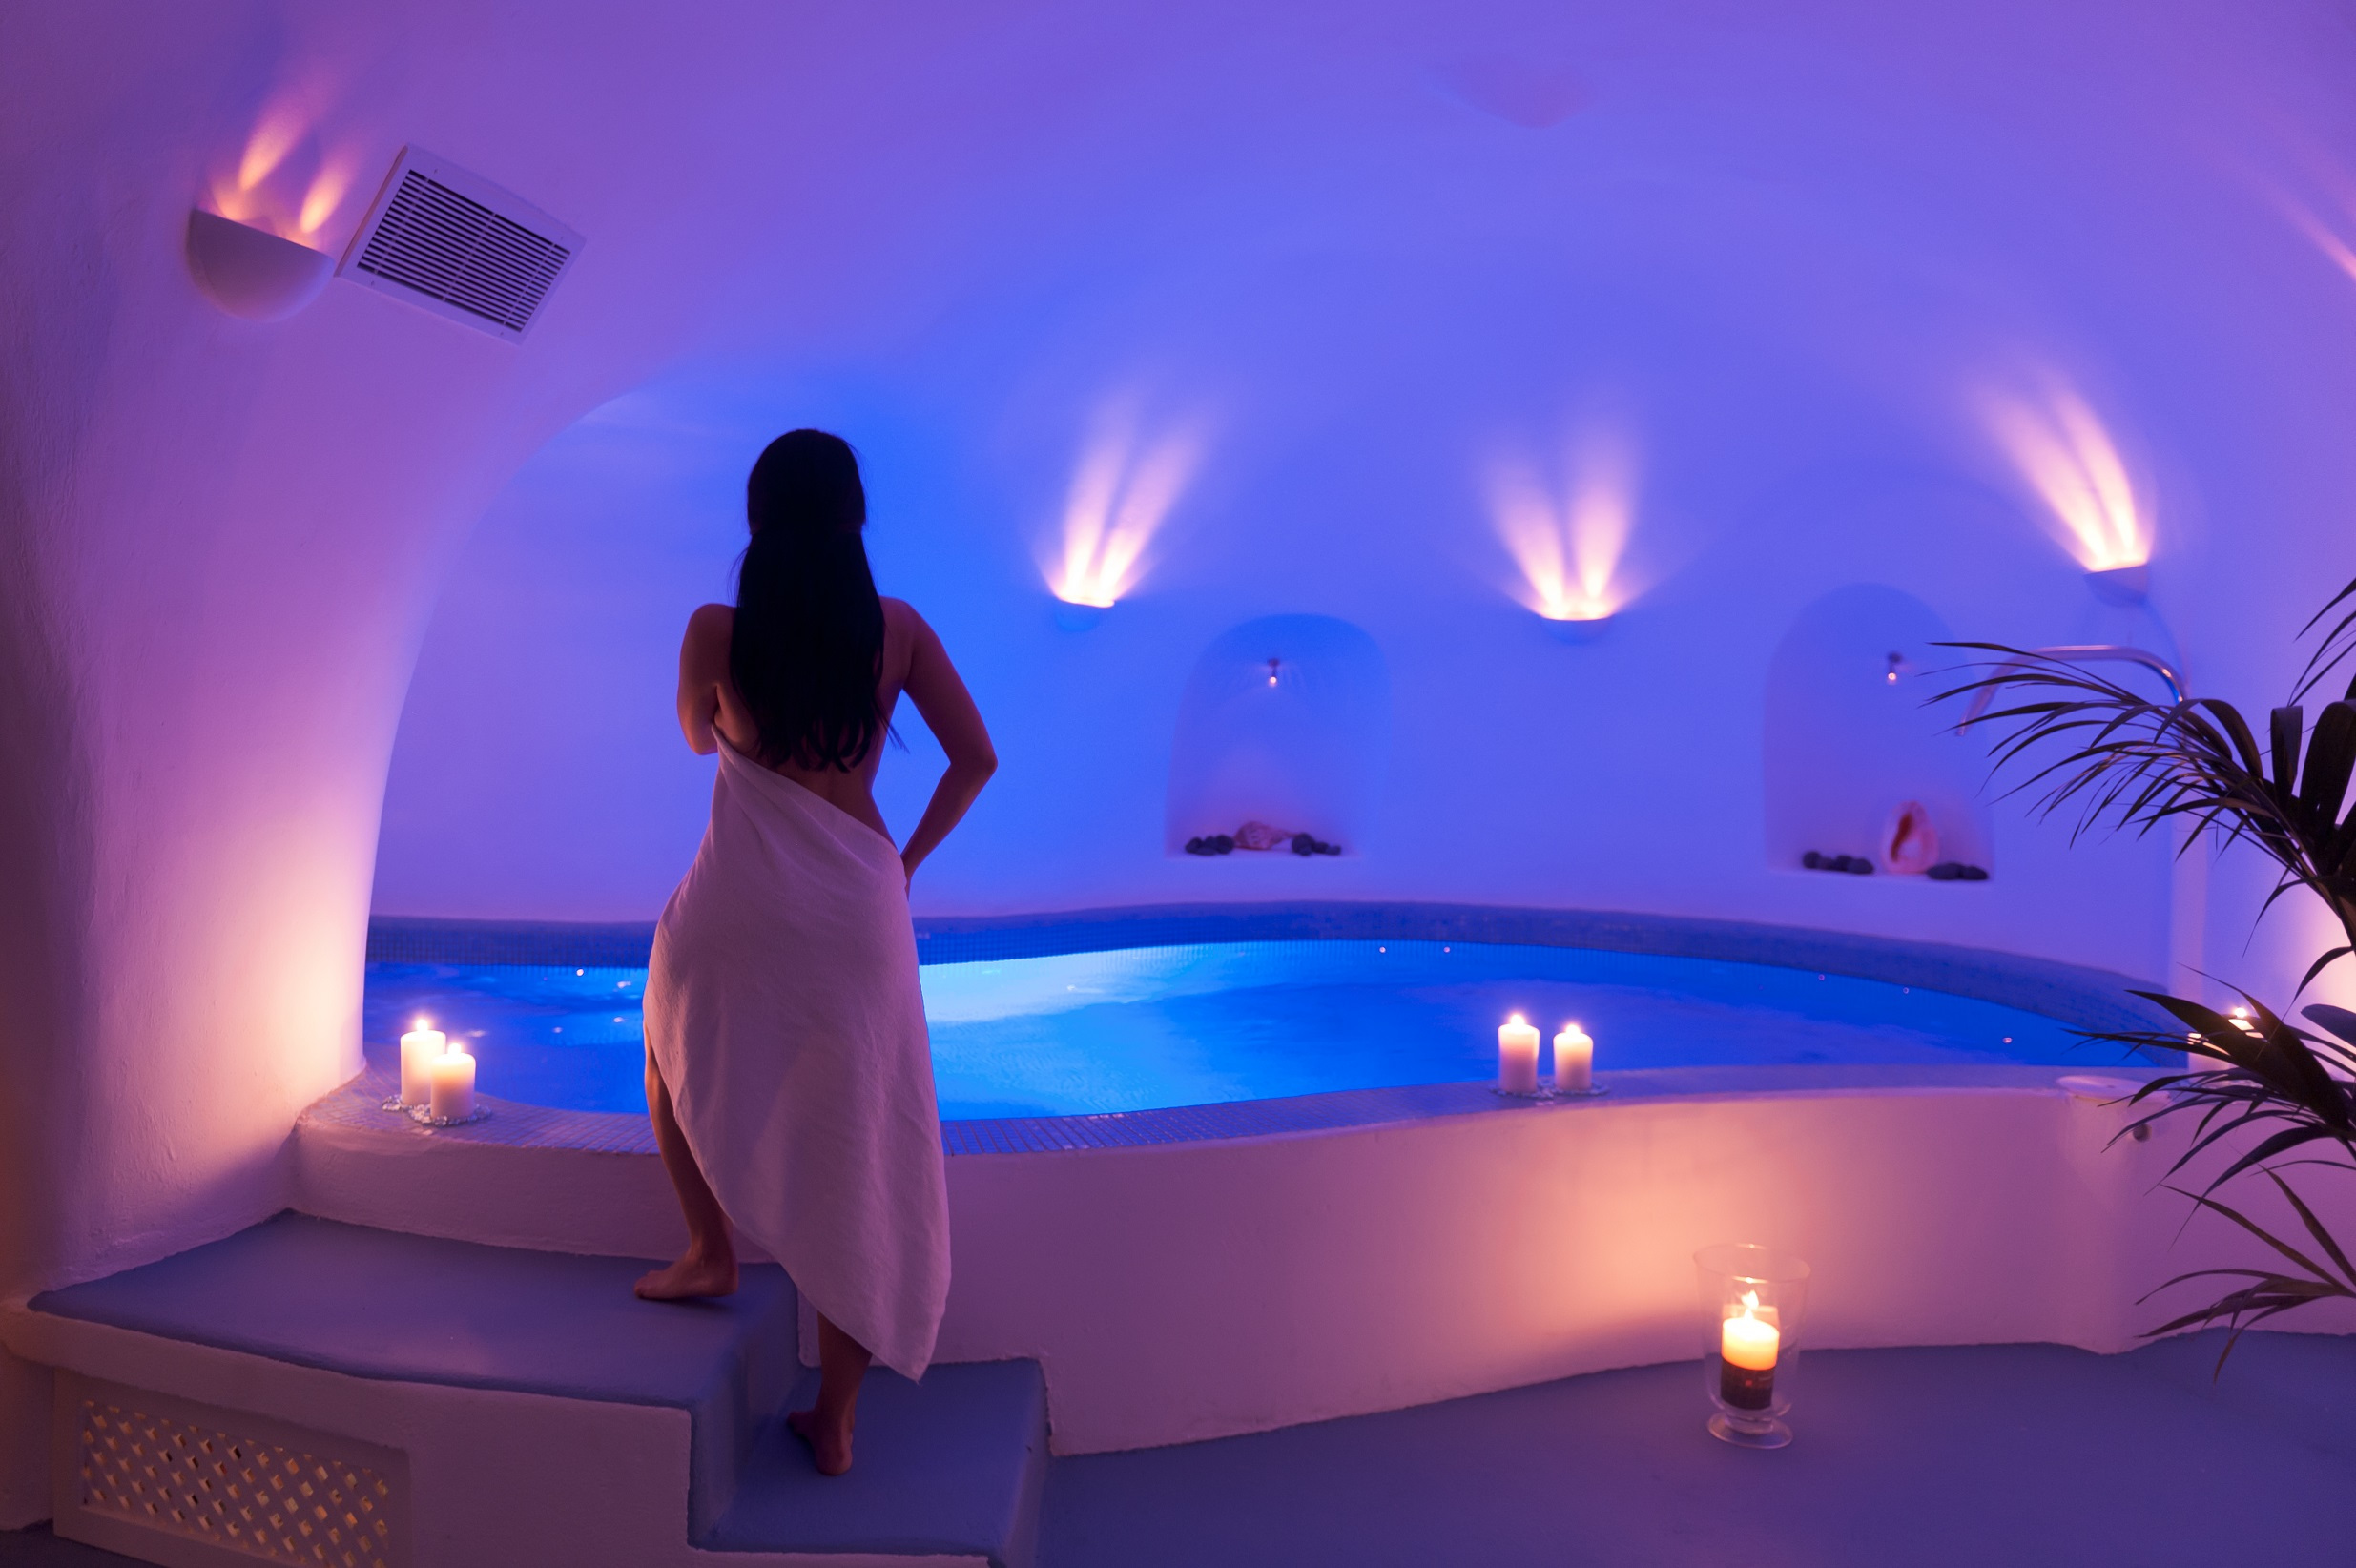 Heated Pool with jacuzzi & hydrotherapy